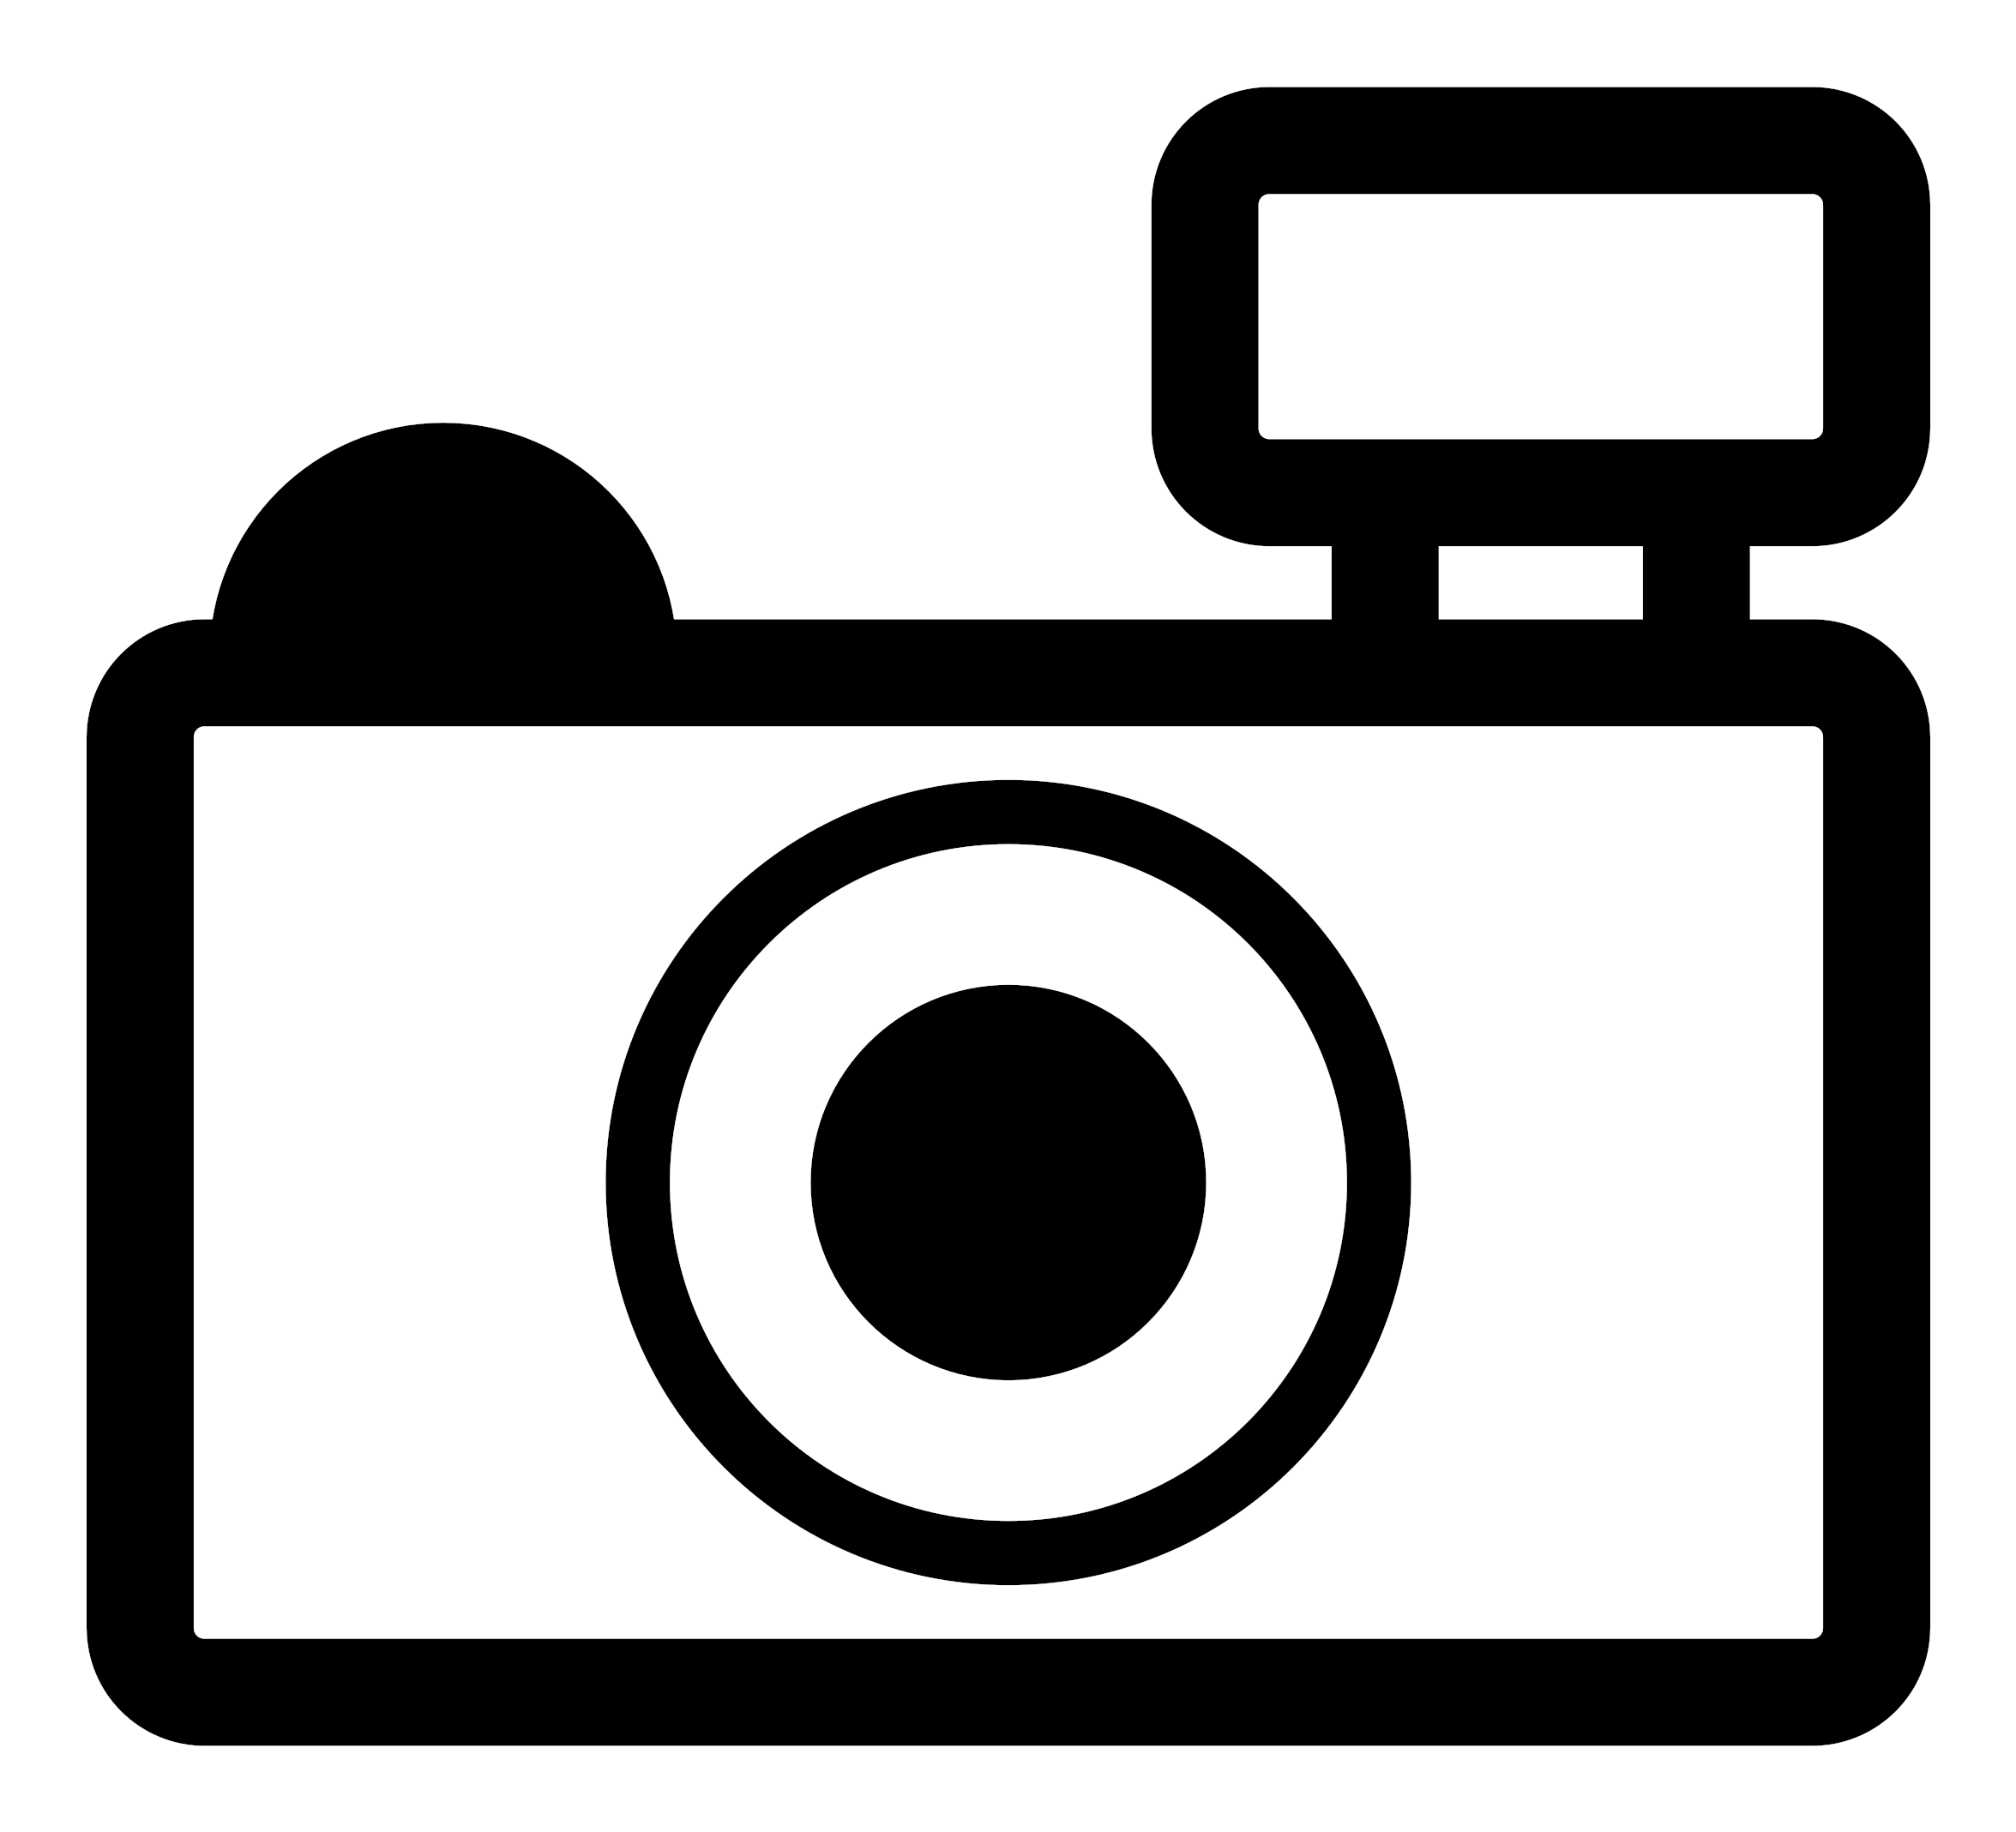 HD Old Camera Clipart Free Clip Art Image Image.